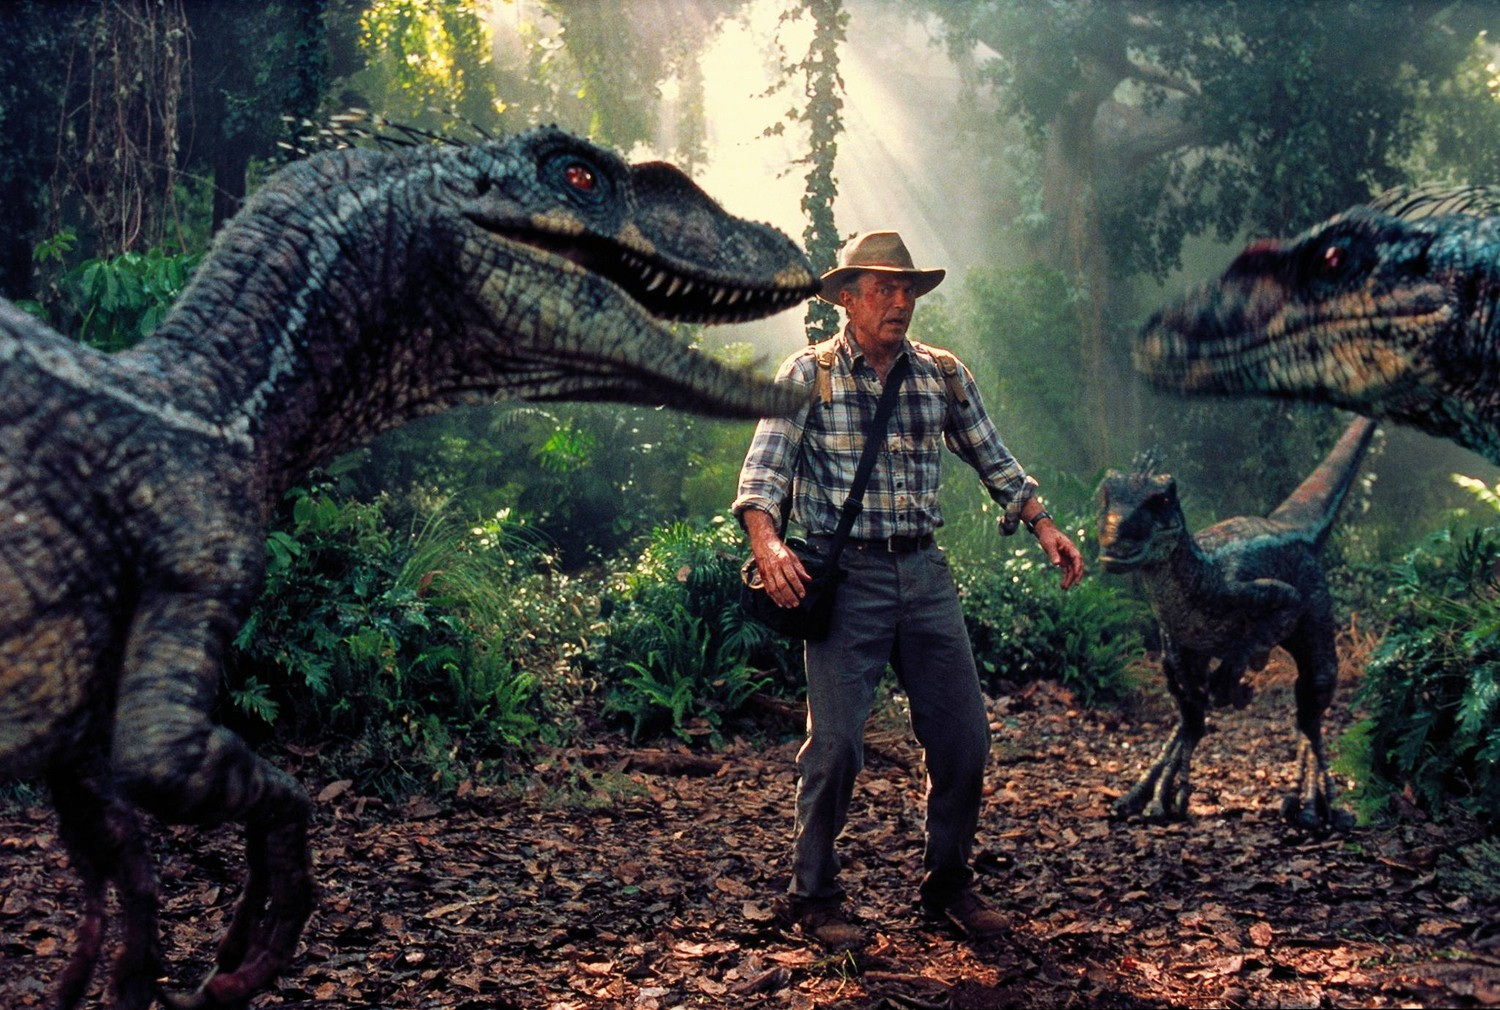 Sam Neill surrounded by velociraptors in Jurassic Park III (2001)